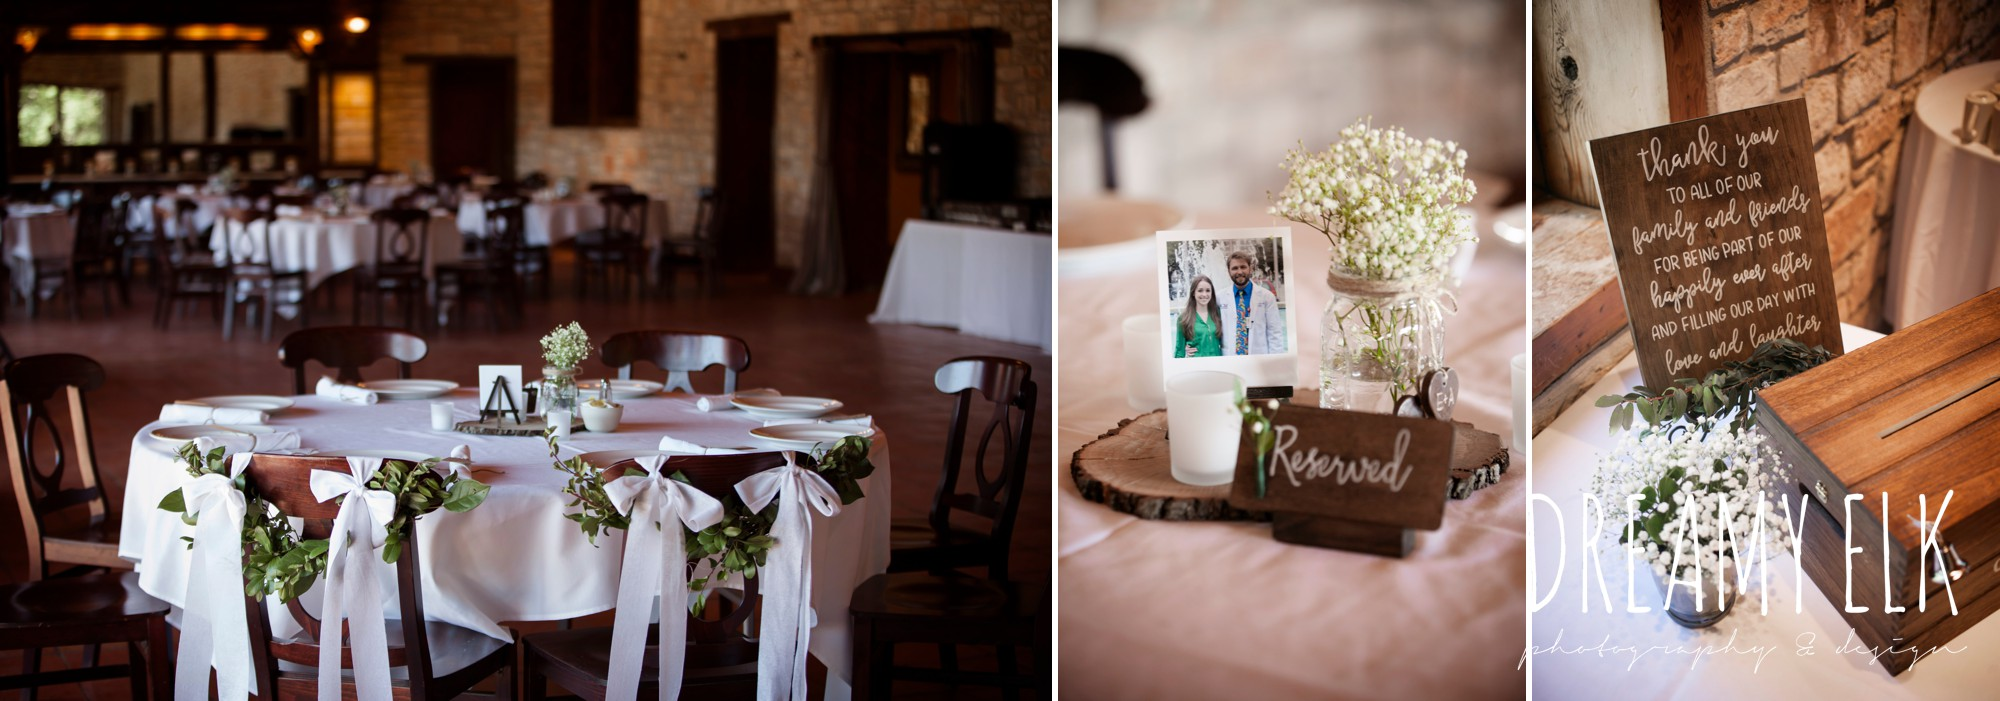 wooden wedding signs, calligraphy, table centerpieces, outdoor spring april wedding photo, thurman's mansion, dripping springs, texas {dreamy elk photography and design}